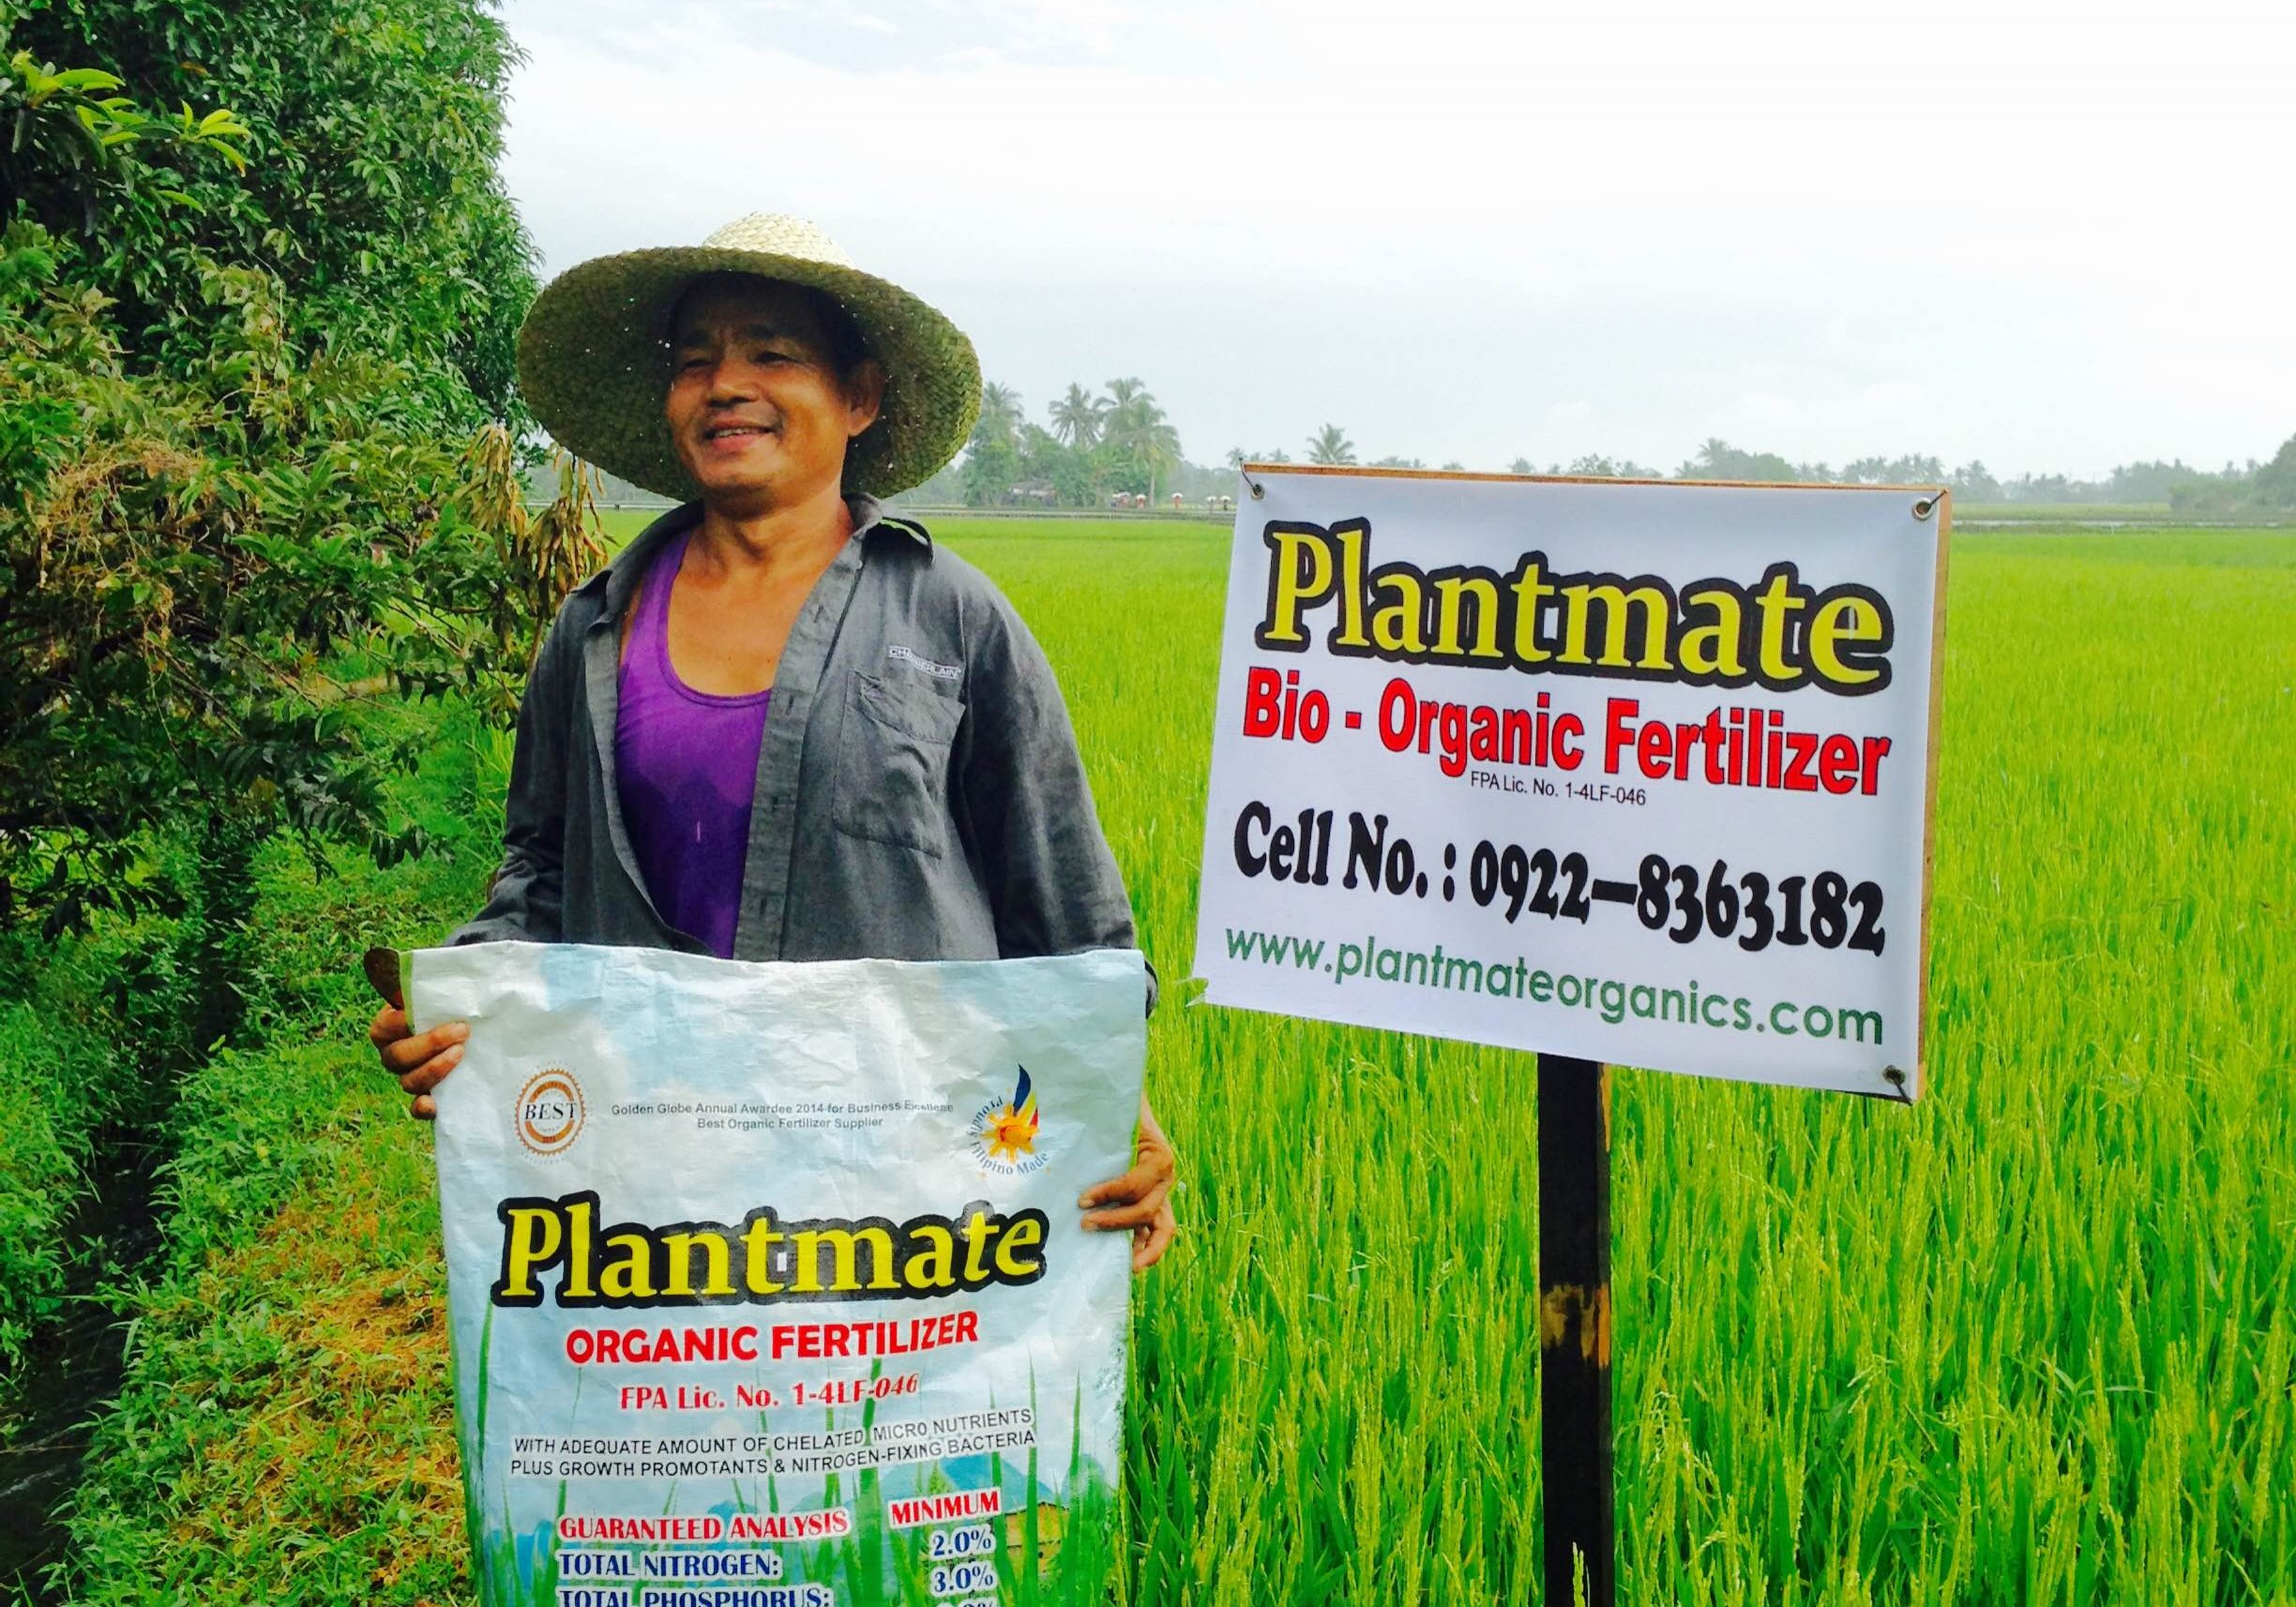 Best organic fertilizer in the Philippines Effective organic Fertilizer Seed germination Bacterial Chemically damage soil Rehabilitate Soil Pathogenic Bacteria El niño Drought Bacterial disease Making compost more potent